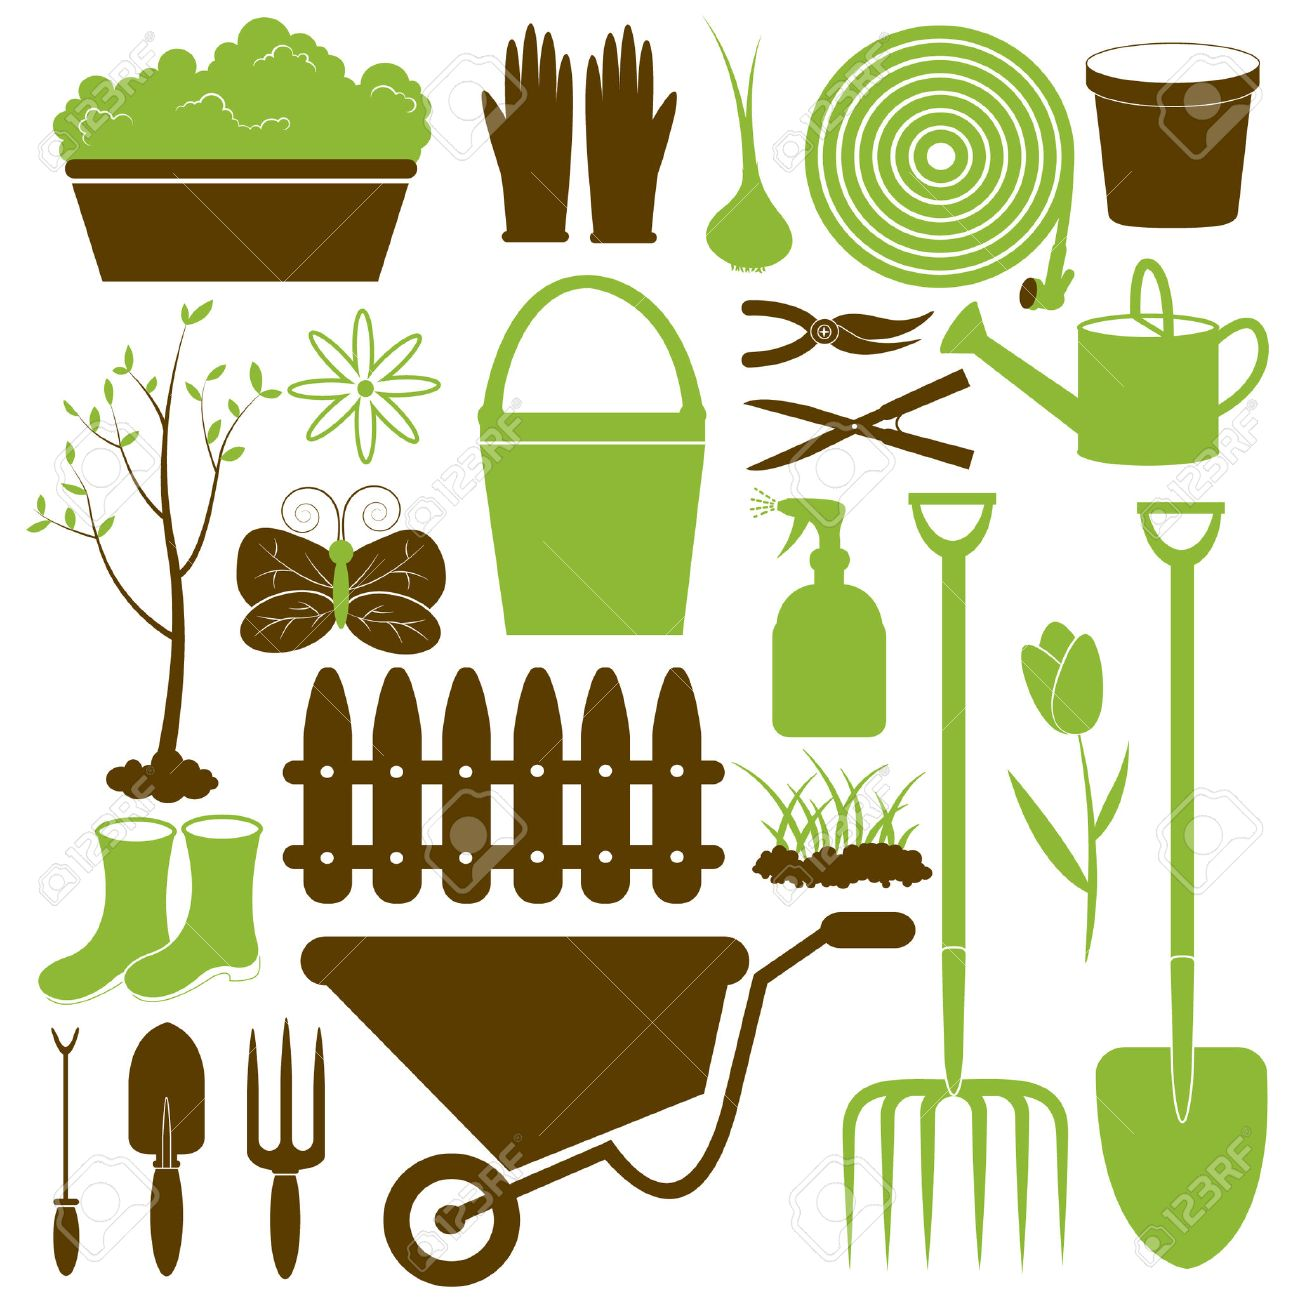 419 grass cutter cliparts stock vector and royalty grass grass cutter vector gardening icons collection